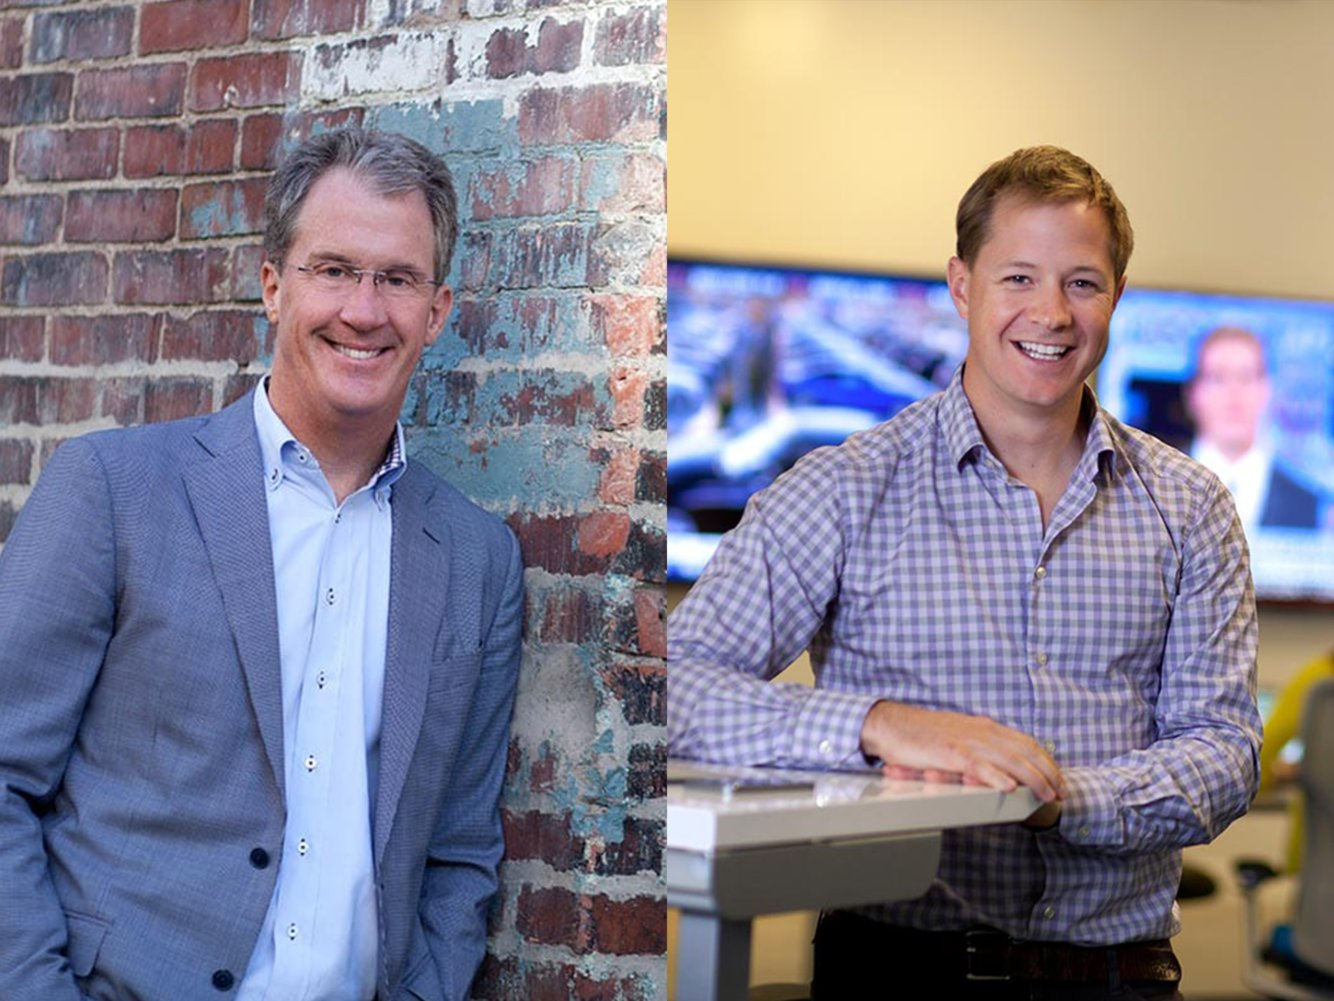 2 ex-Sequoia investors who ditched Silicon Valley for Ohio raised a $350 million fund to bring venture capital to America's heartland